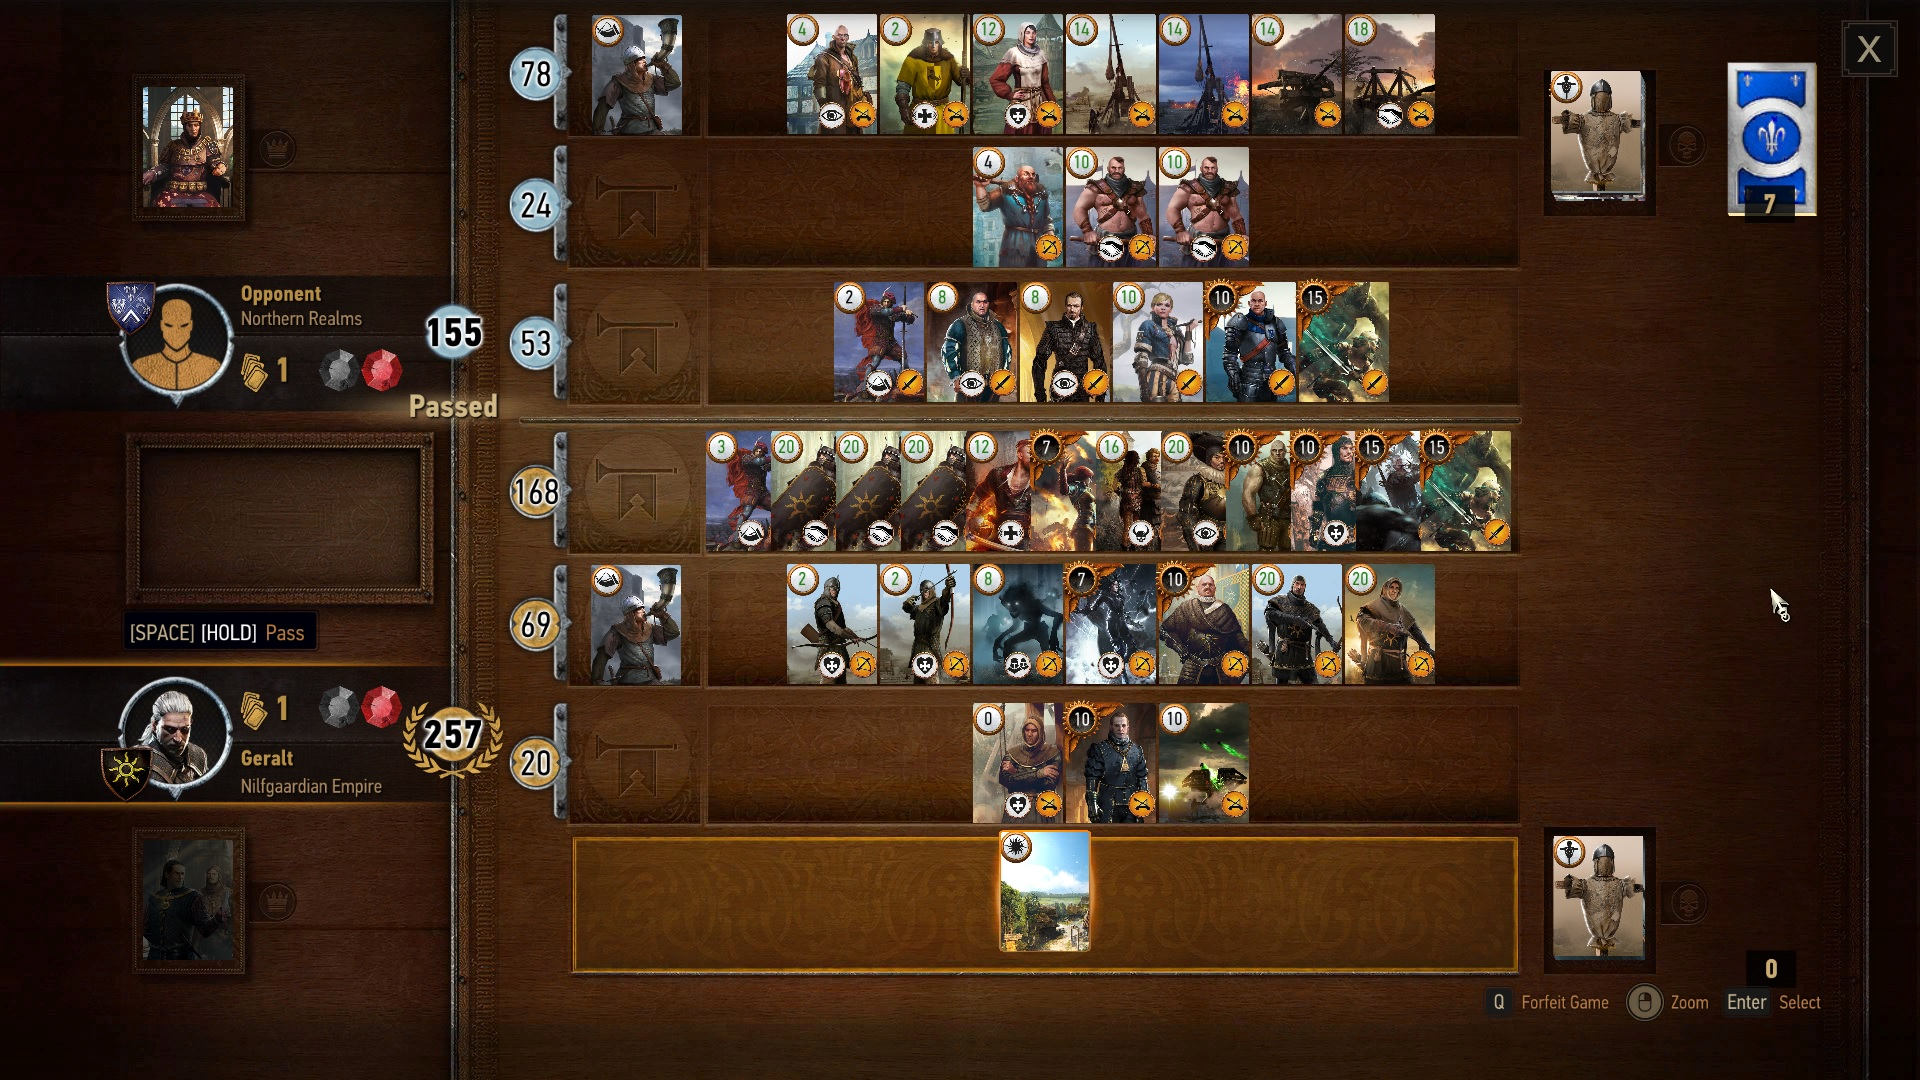 Gwent card locations the witcher 3 - Gwent Card Locations The Witcher 3 53